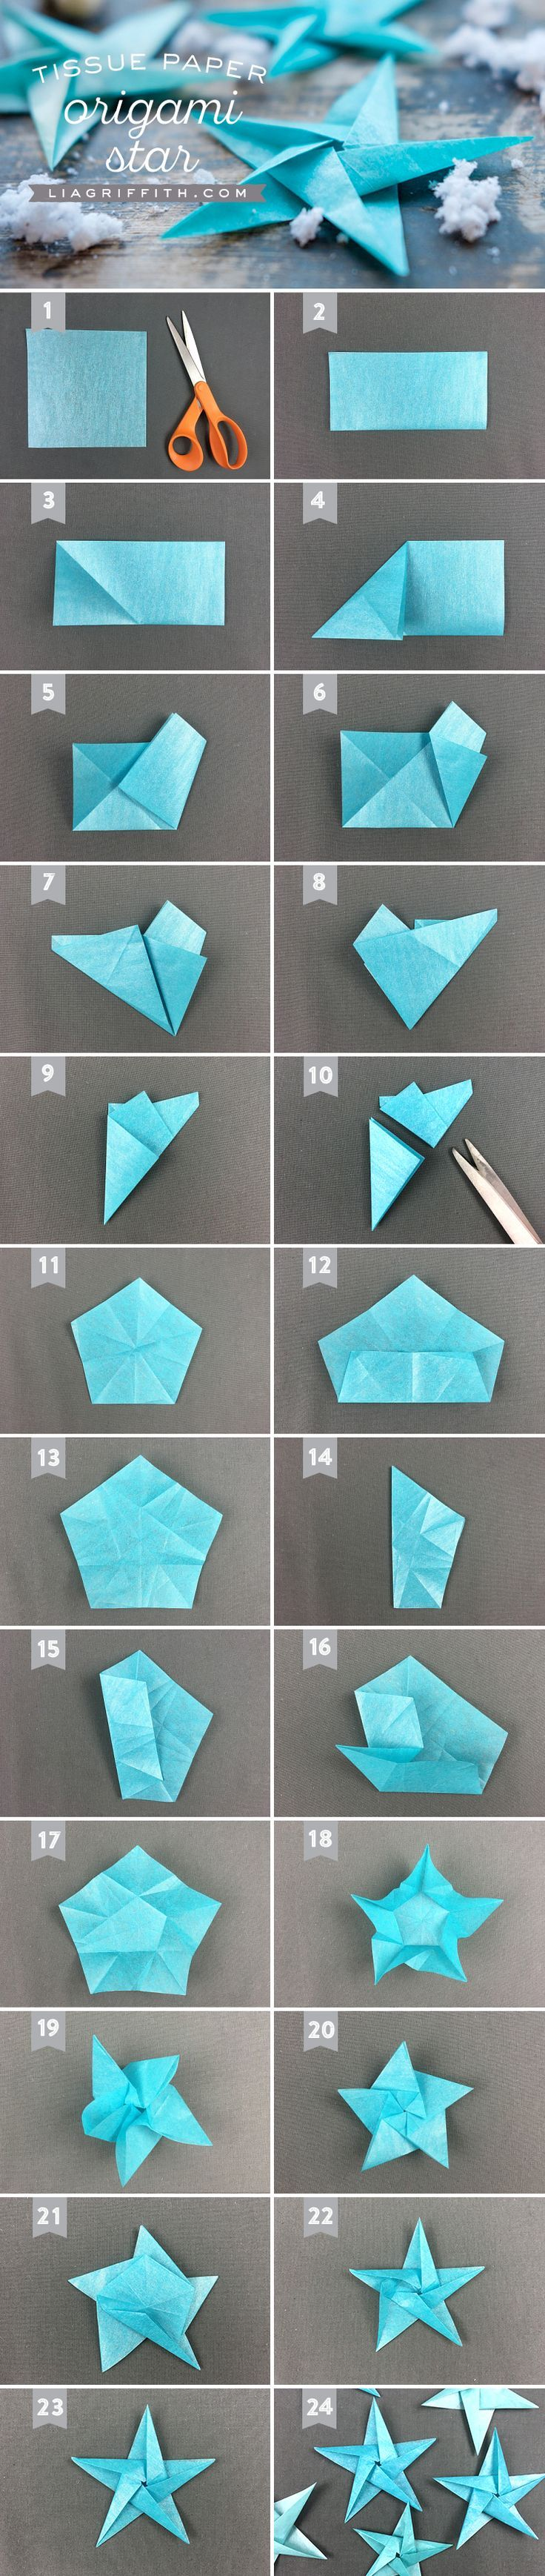 Tissue Star Origami Christmas Ornaments  Origami Paper stars and